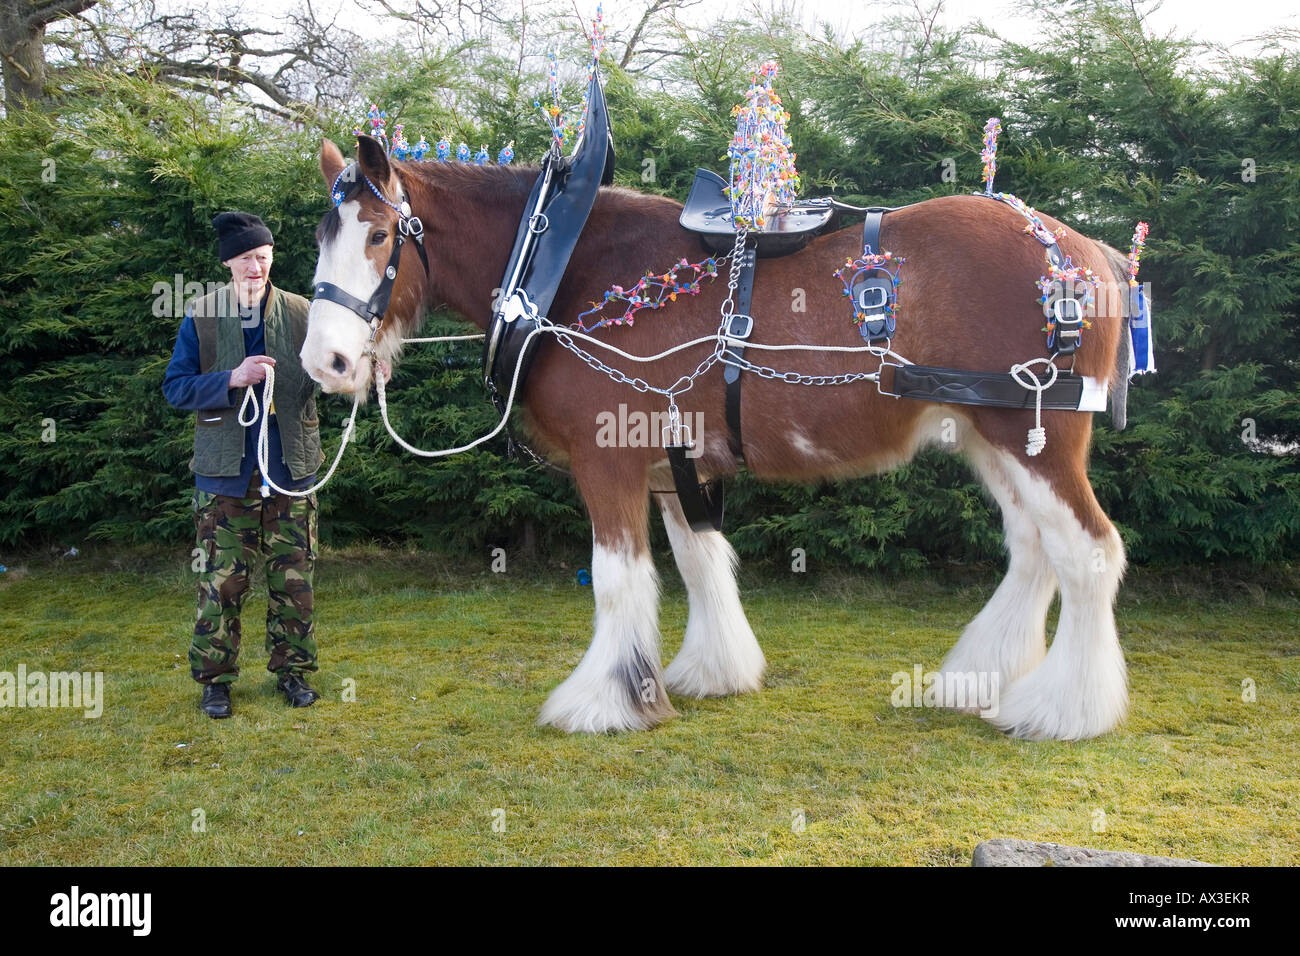 Clydesdale Horse in Harness with Handler, The Clydesdale is a breed of draught horse derived from the farm horses - Stock Image